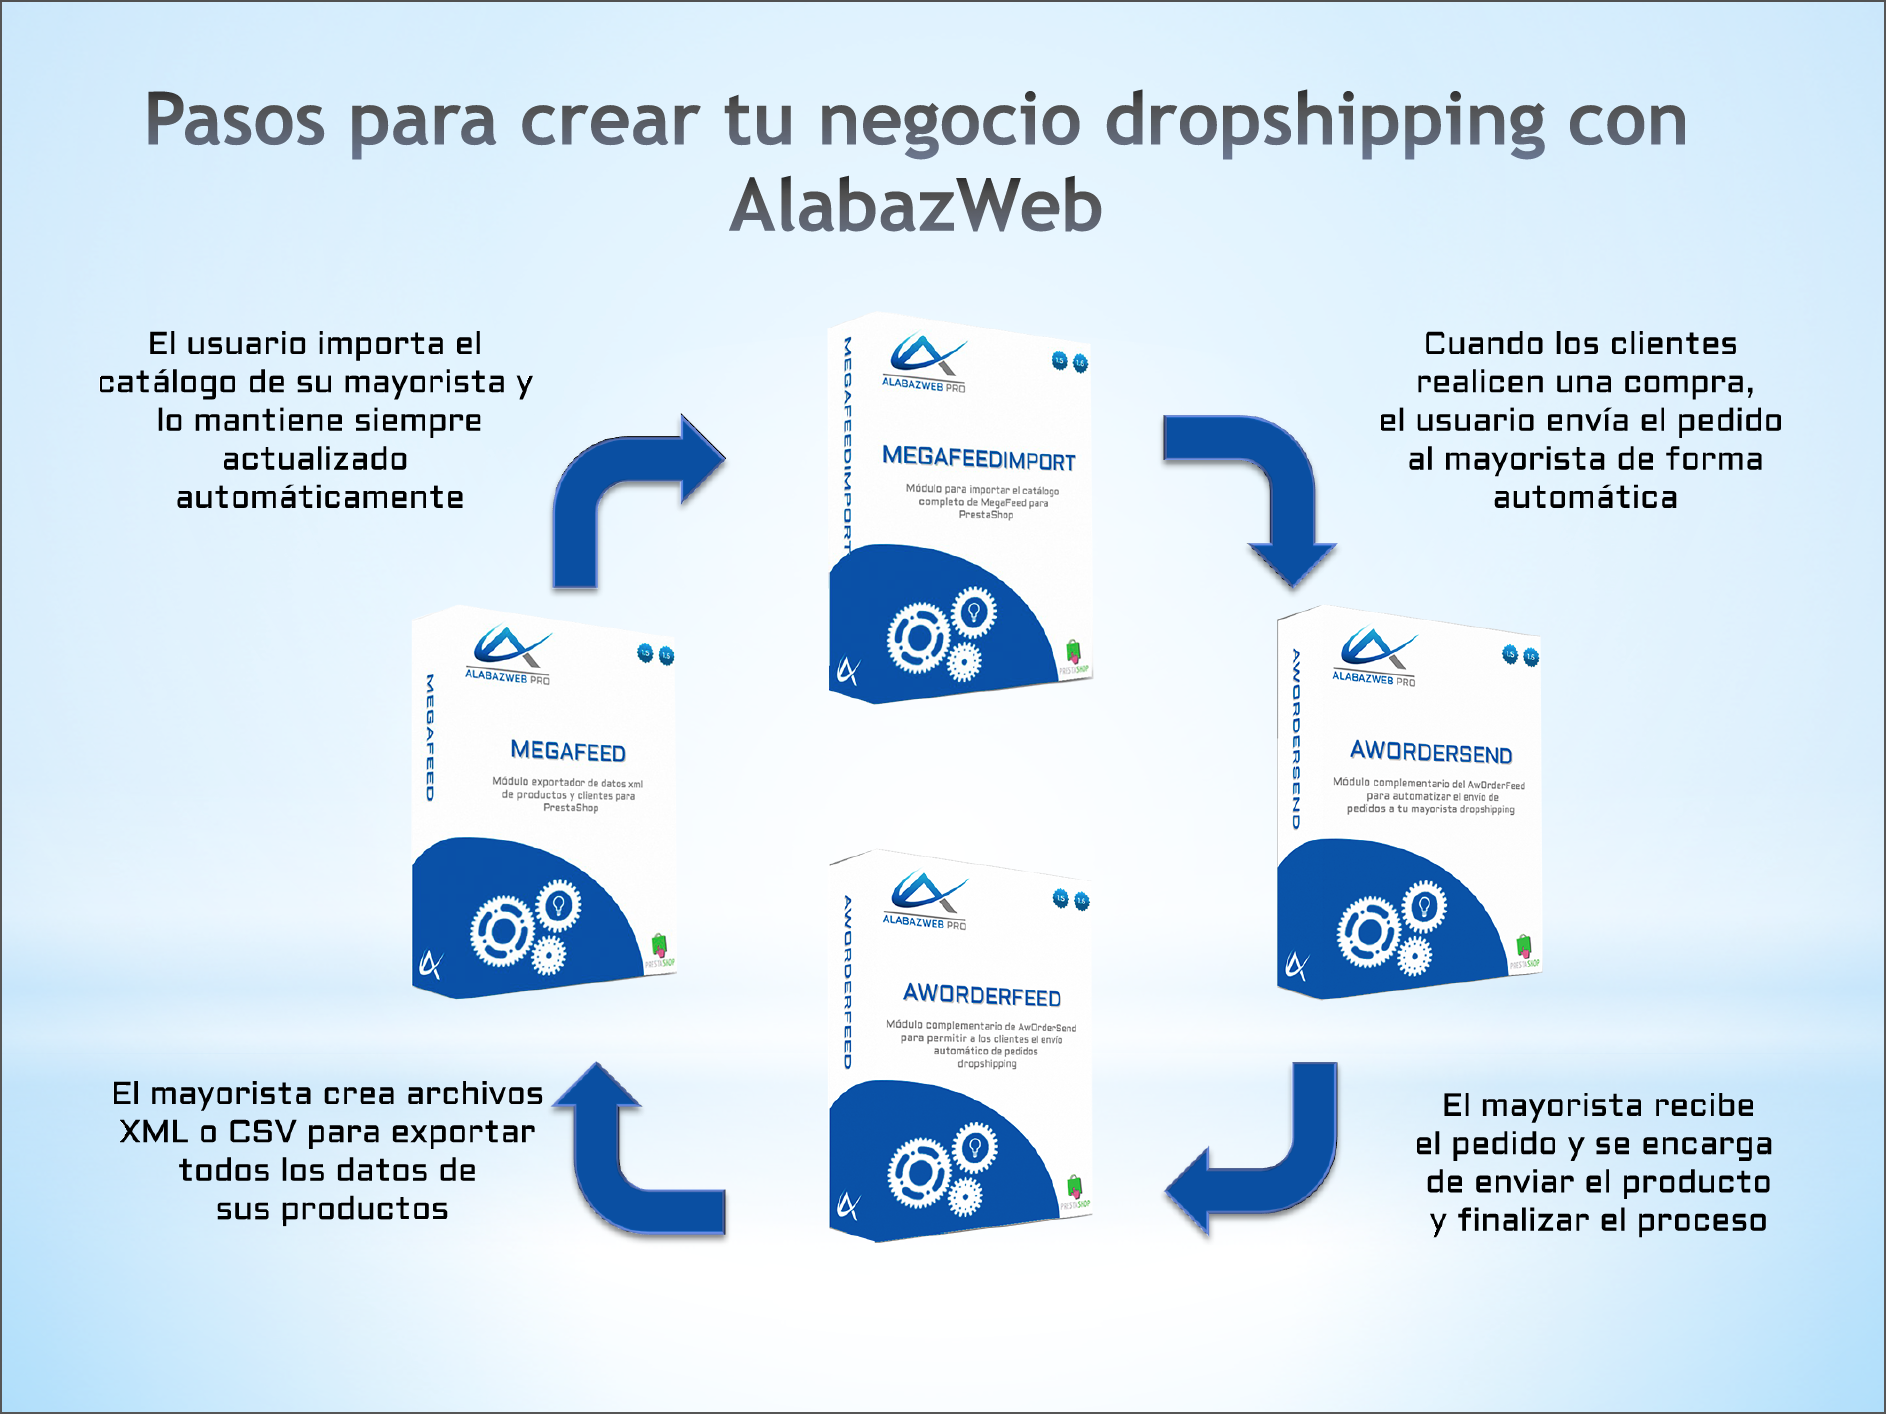 in praise we offer you all the necessary modules to simplify the process of setting up a dropshipping store